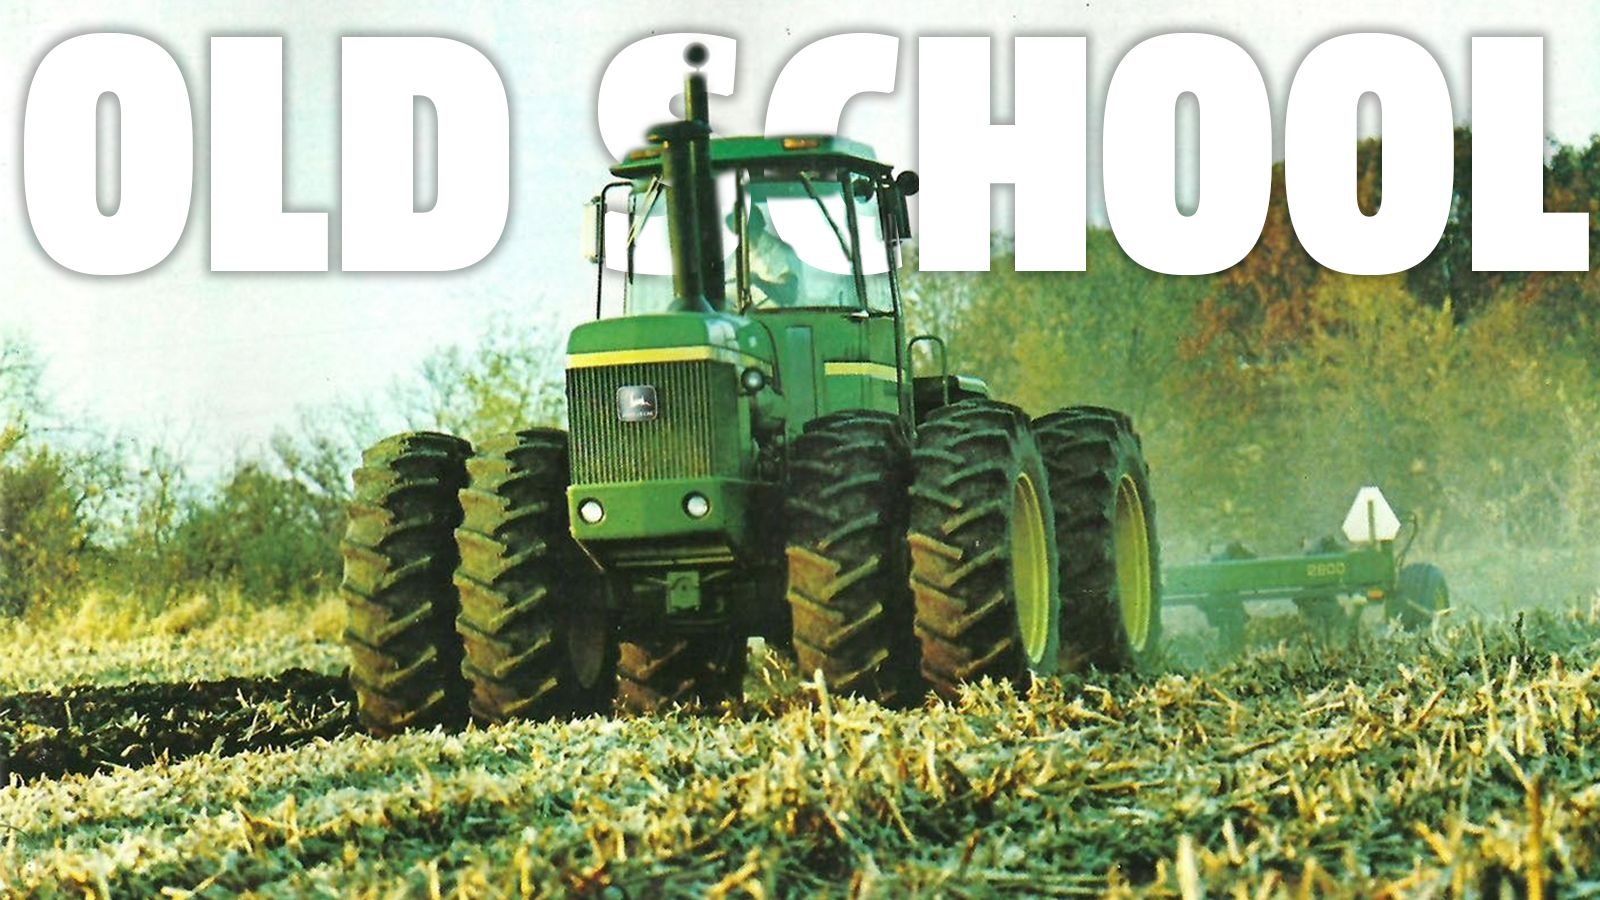 Classic Tractors From The '80s Are Becoming Popular With Farmers Sick Of High-Tech Bullshit